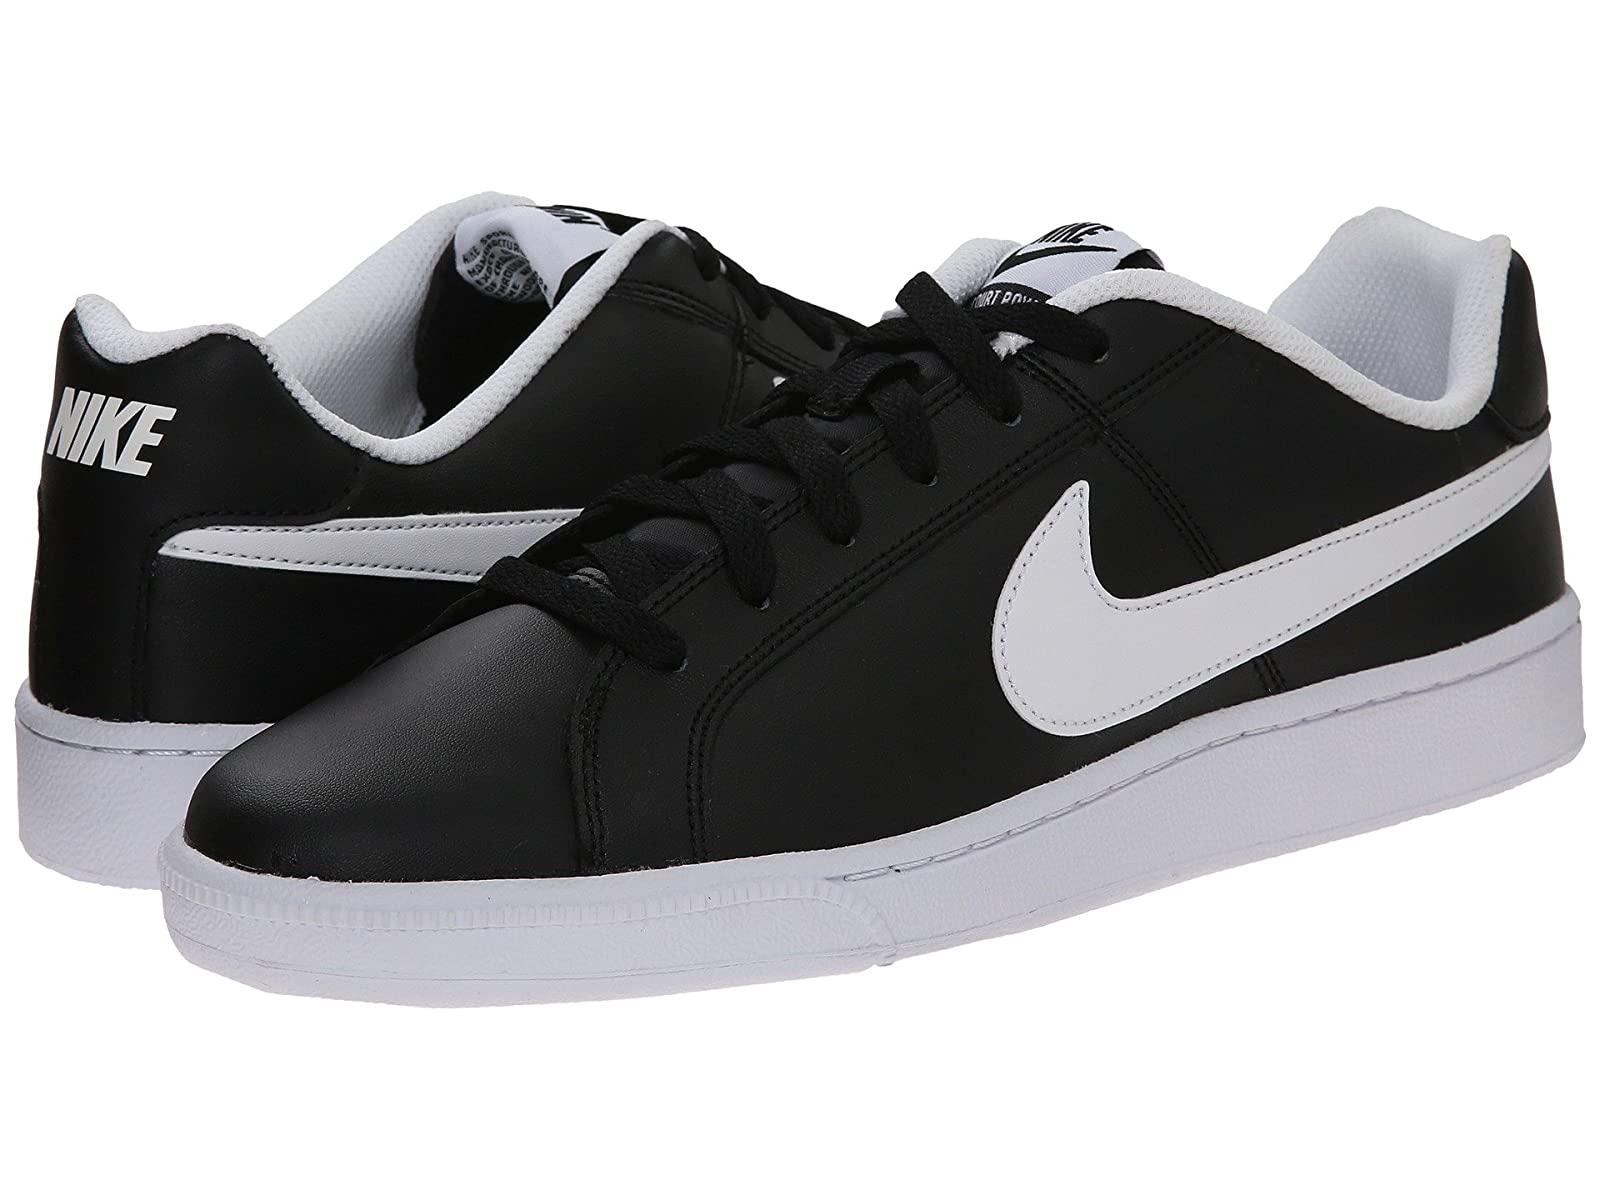 Nike Court RoyaleCheap and distinctive eye-catching shoes